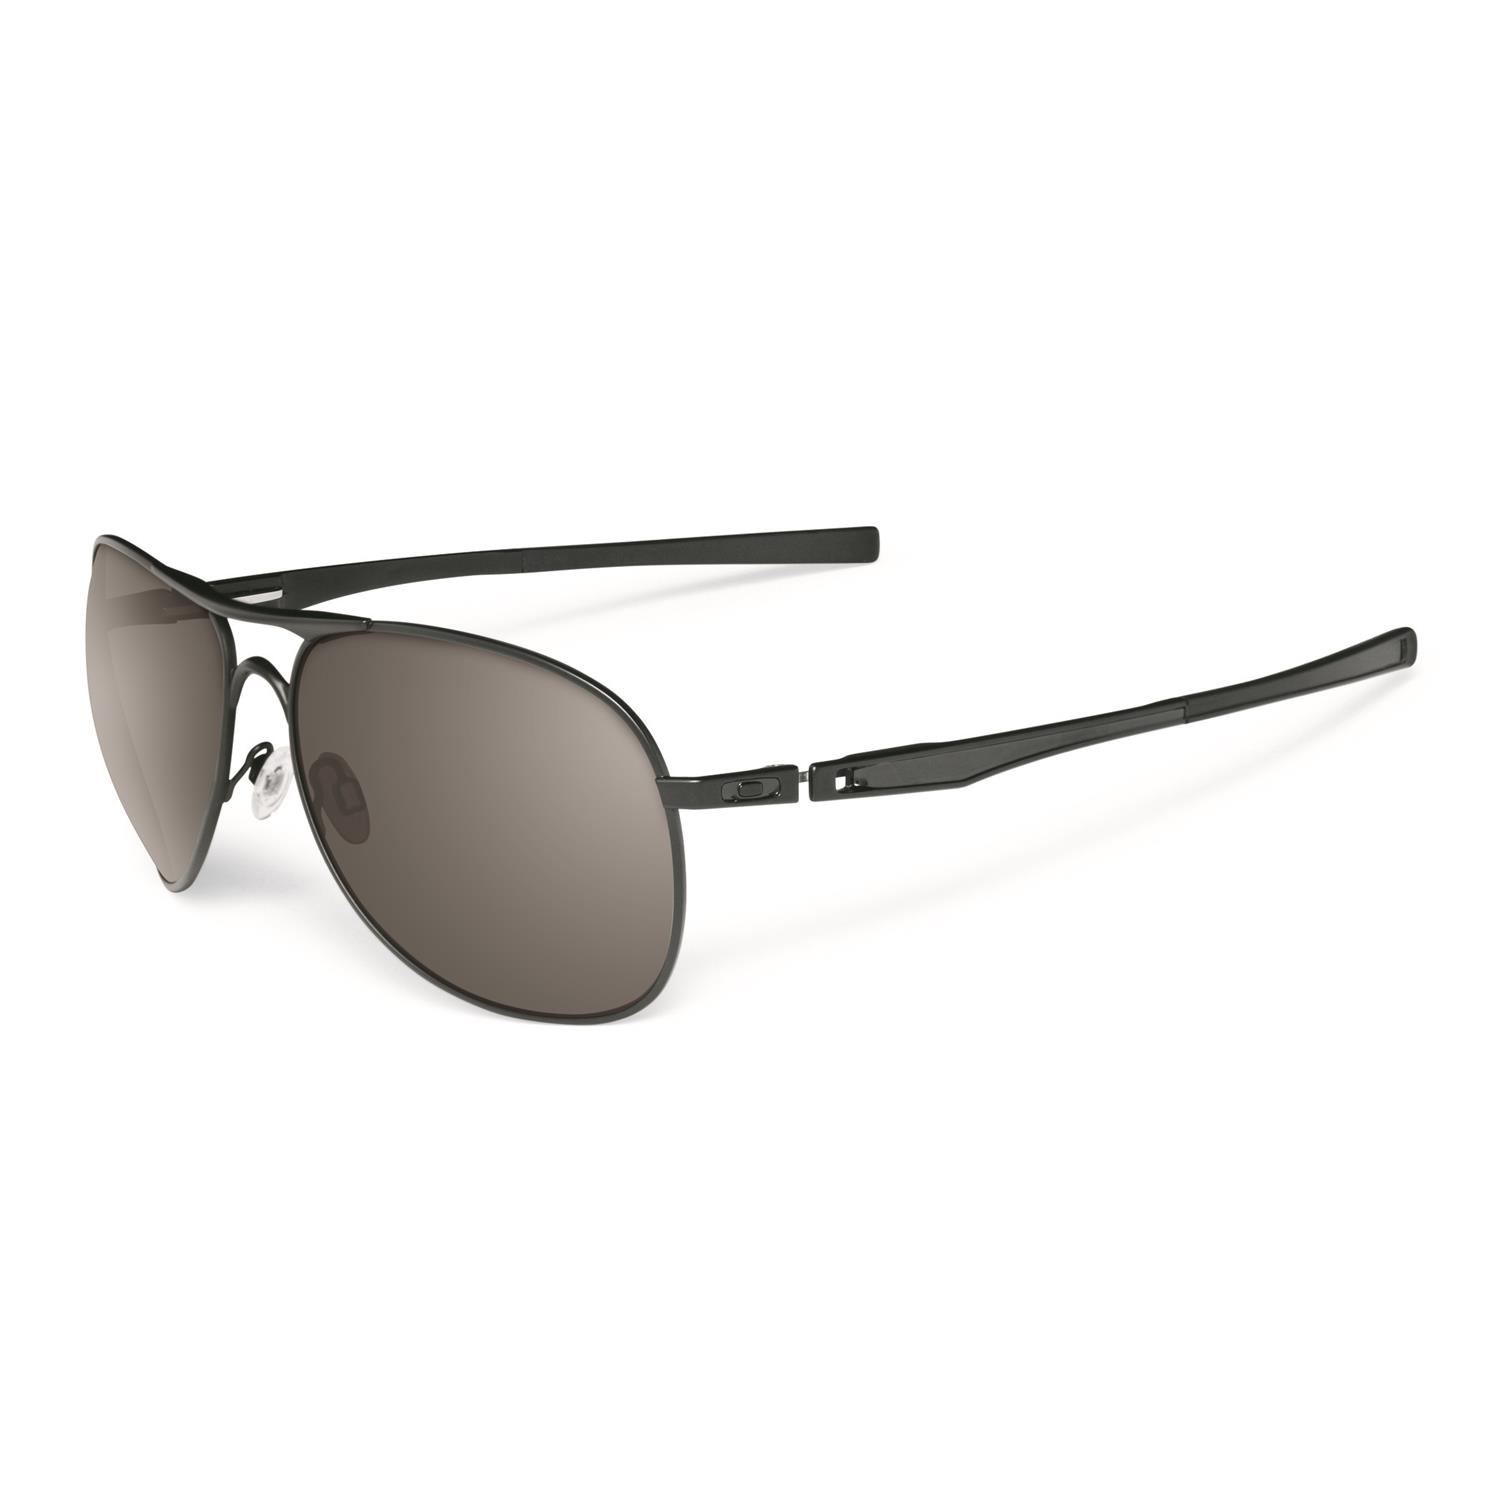 Eqtcyhsrhh4ypkg Oakley Sunglasses Outlet